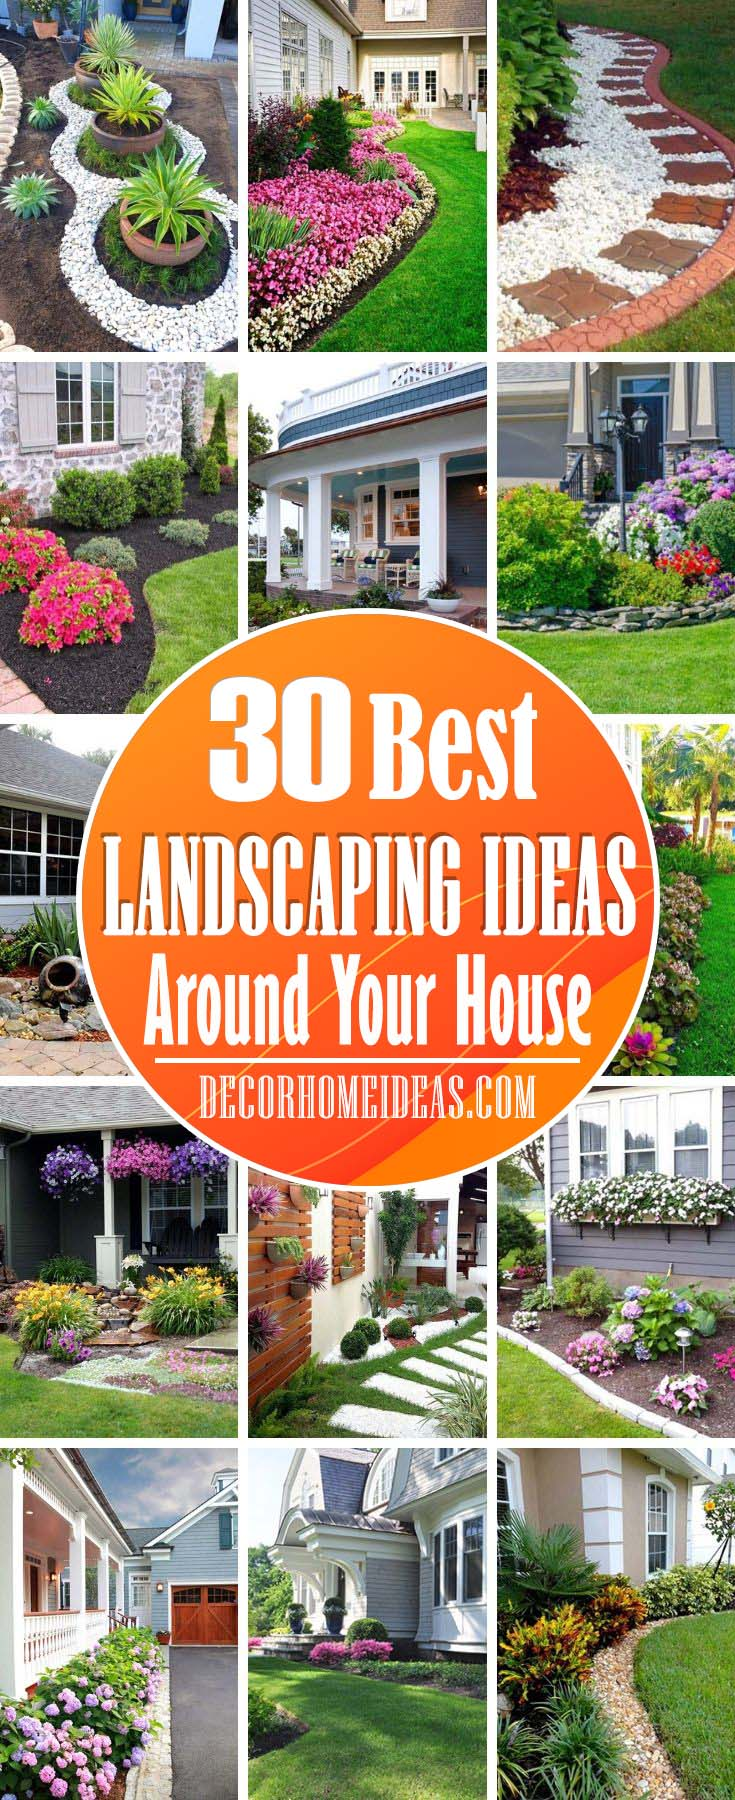 Best Landscaping Ideas Around House. Landscaping ideas and designs for small areas around your house - small garden, backyard or front yard. #landscaping #aroundhouse #diy #decorhomeideas